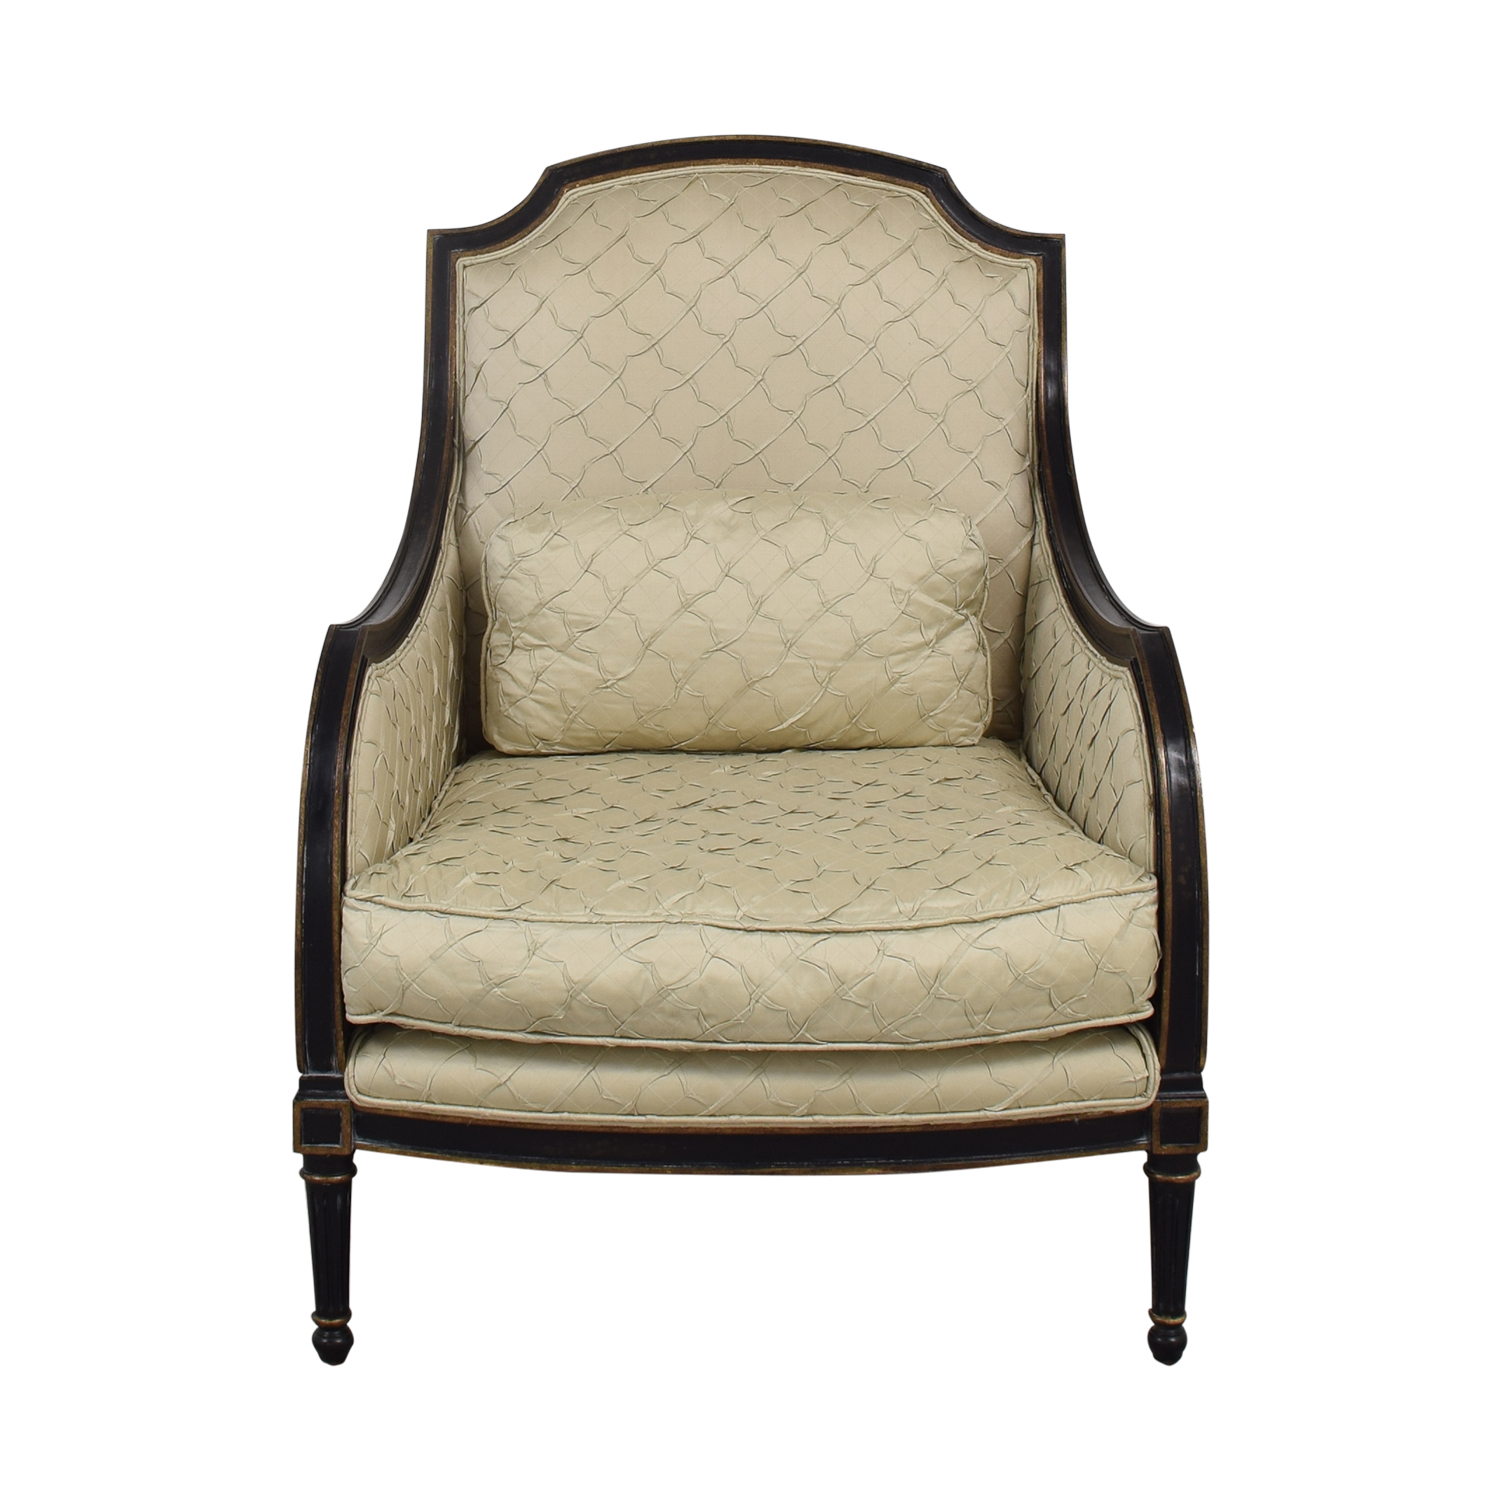 Jardine Ent Quilted Side Chair on sale